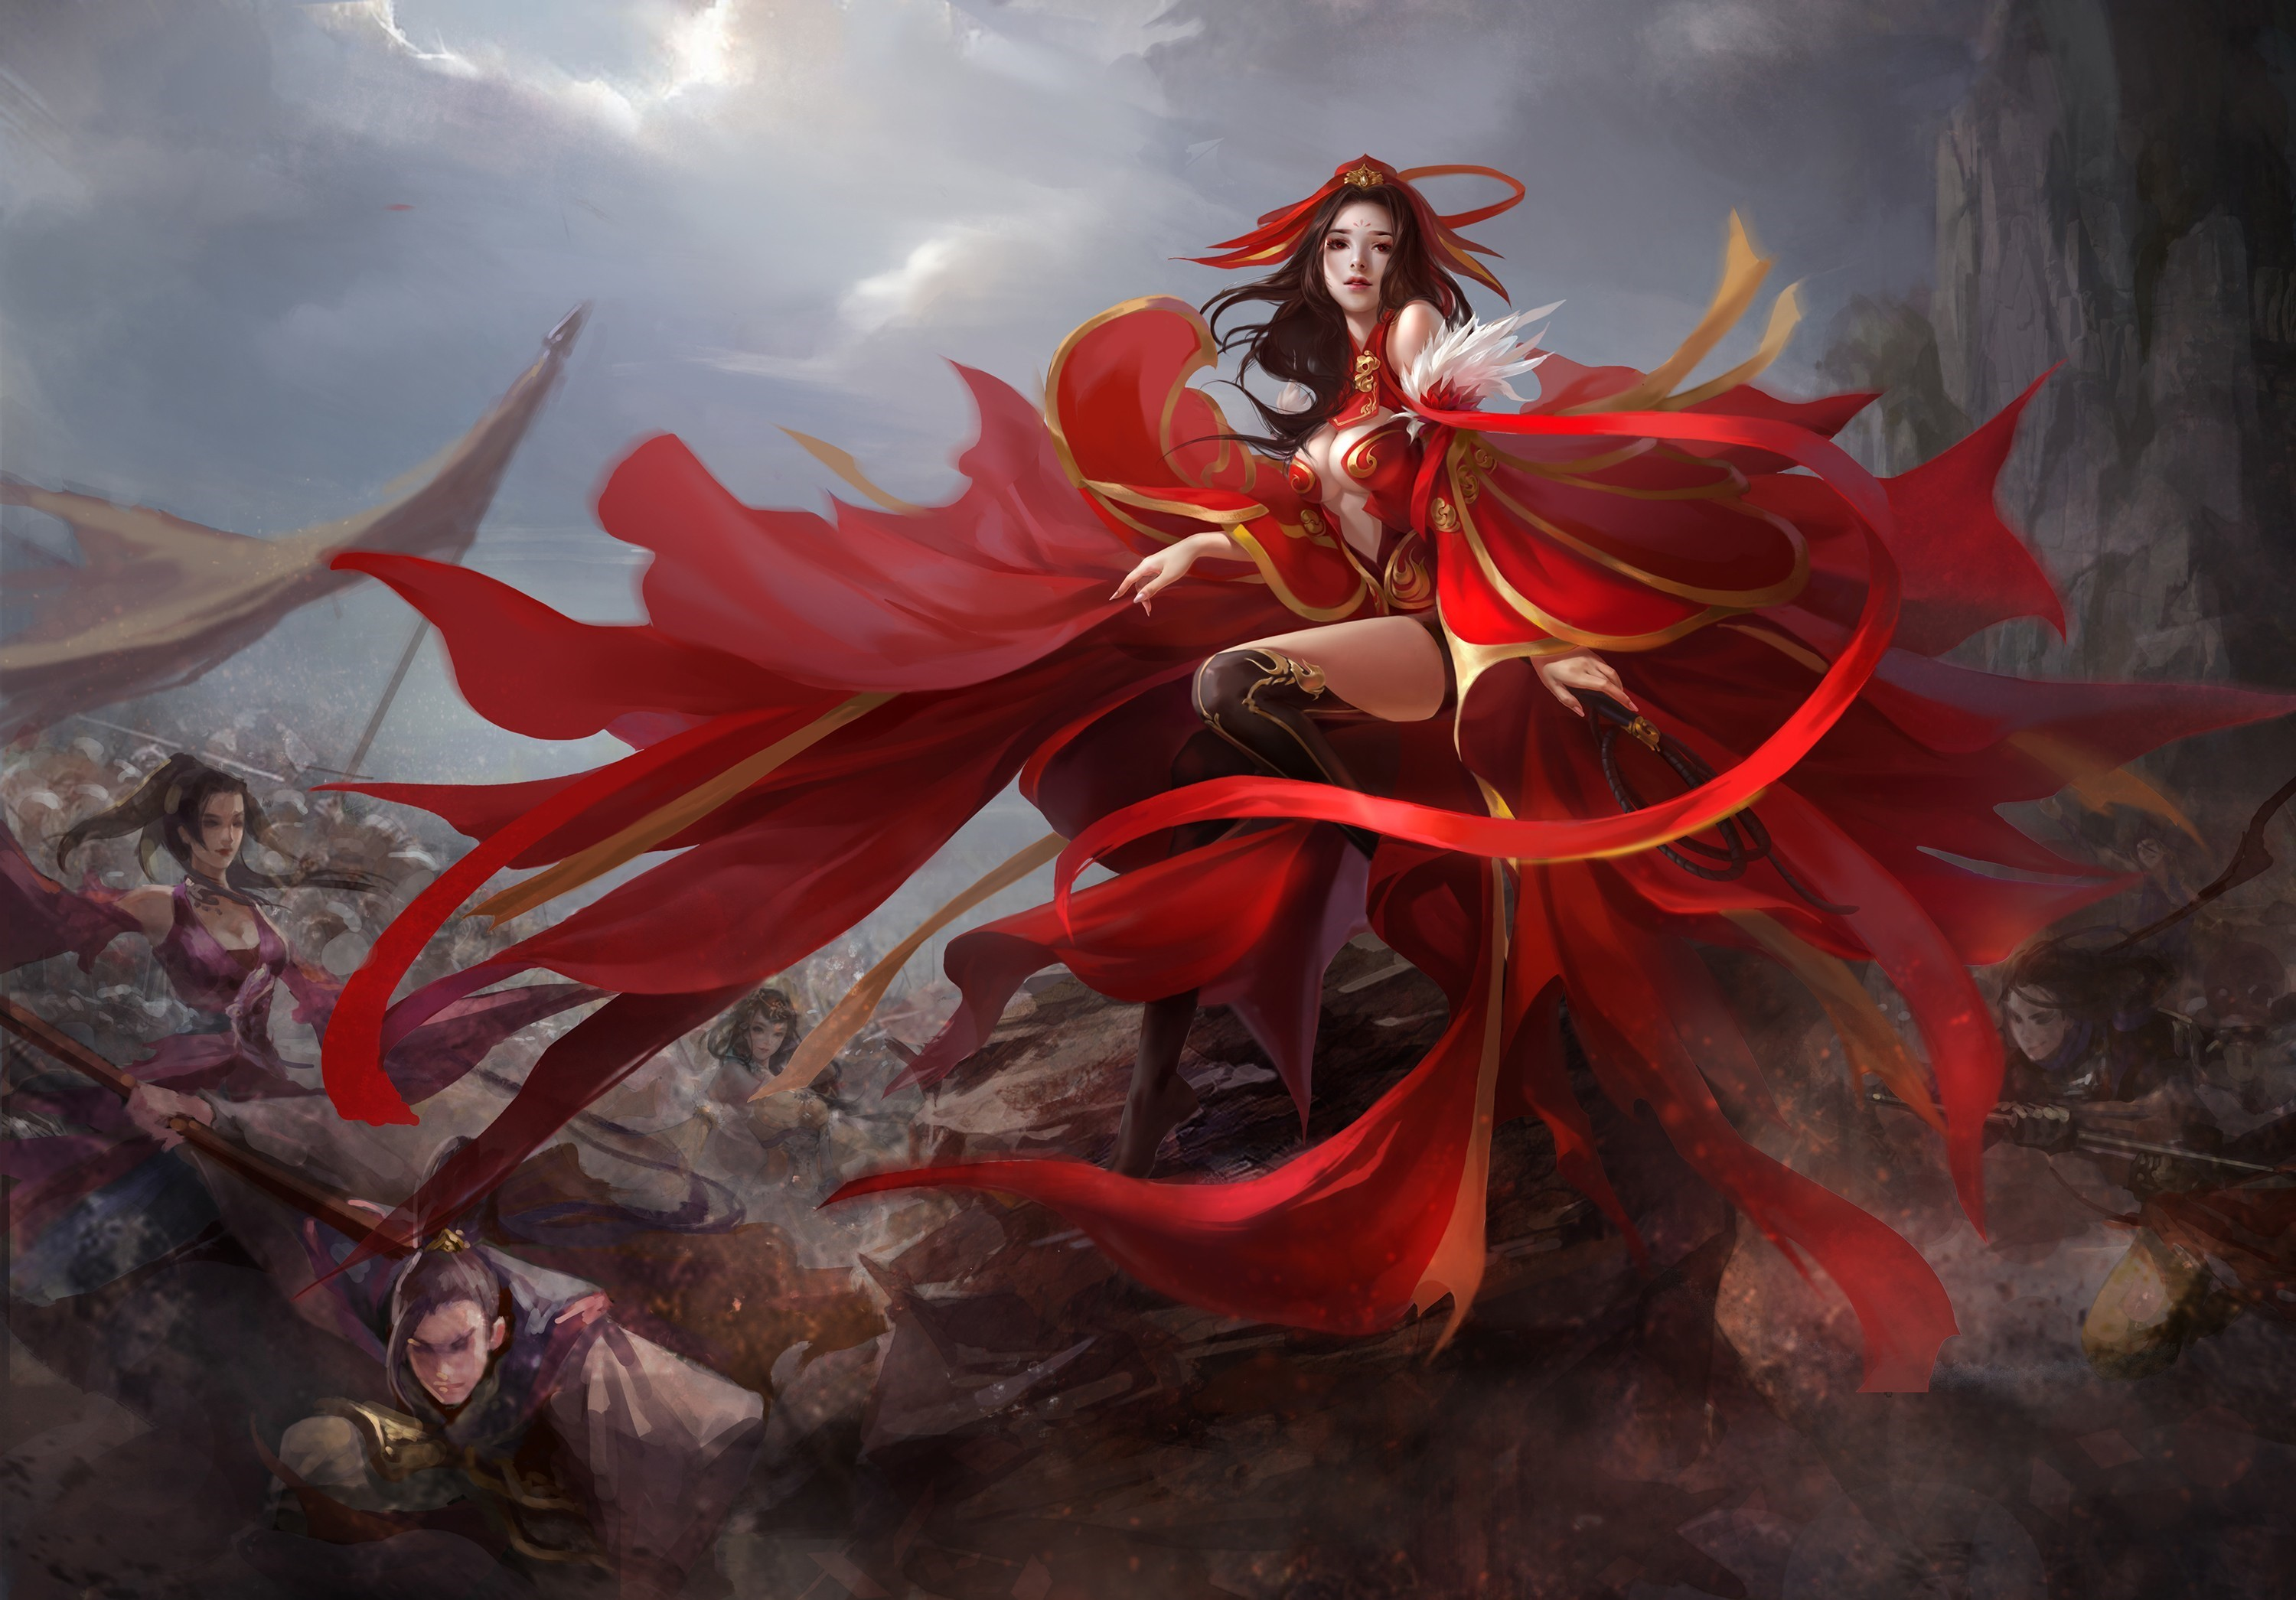 Anime Girl Angle Wallpaper 1366x768 Warrior Full Hd Wallpaper And Background 3000x2091 Id